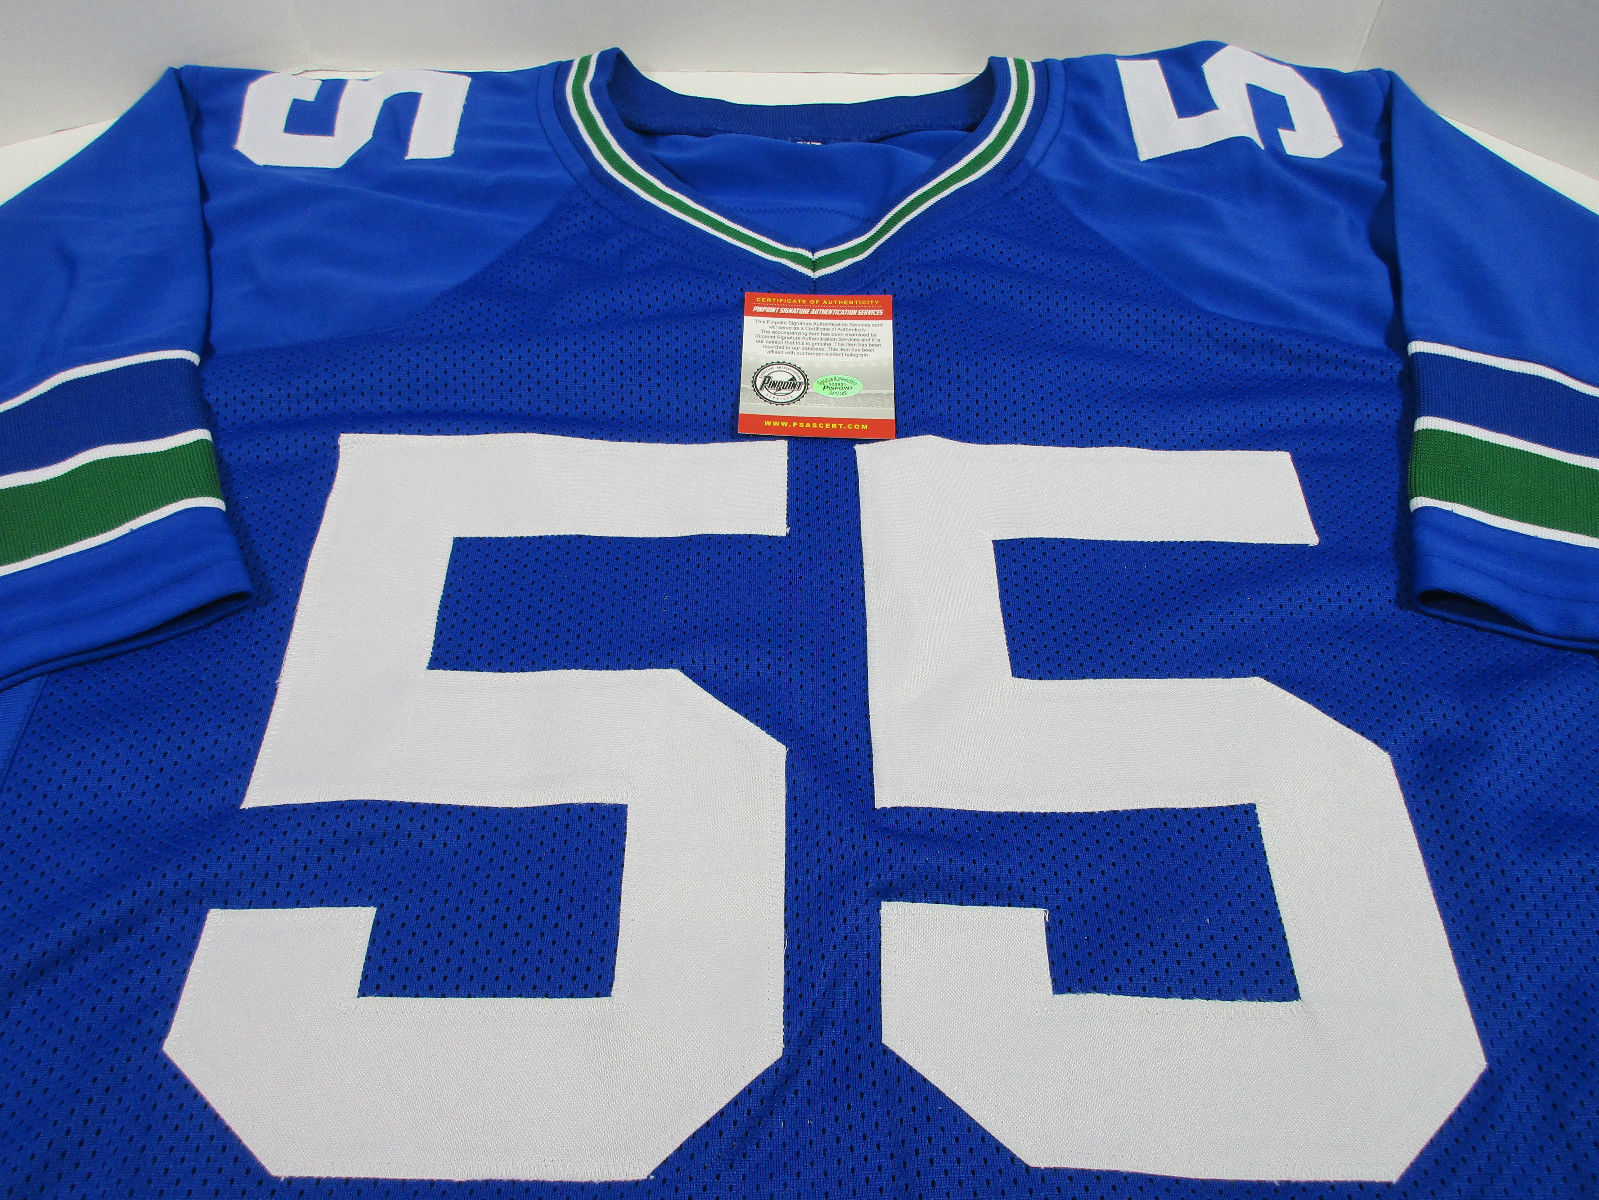 Brian Bosworth Signed Seahawks Jersey / 1985 National Champion Oklahoma Sooners